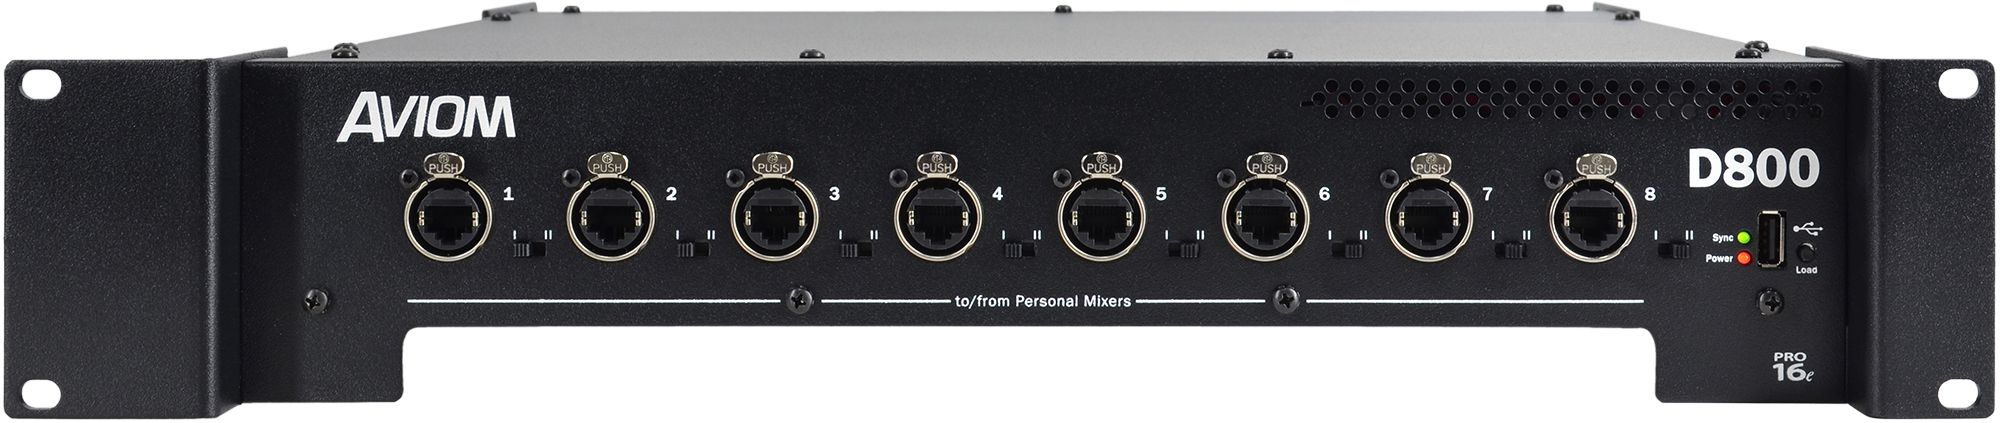 Aviom D800-Dante A-Net Distributor is at Hollywood Sound Systems